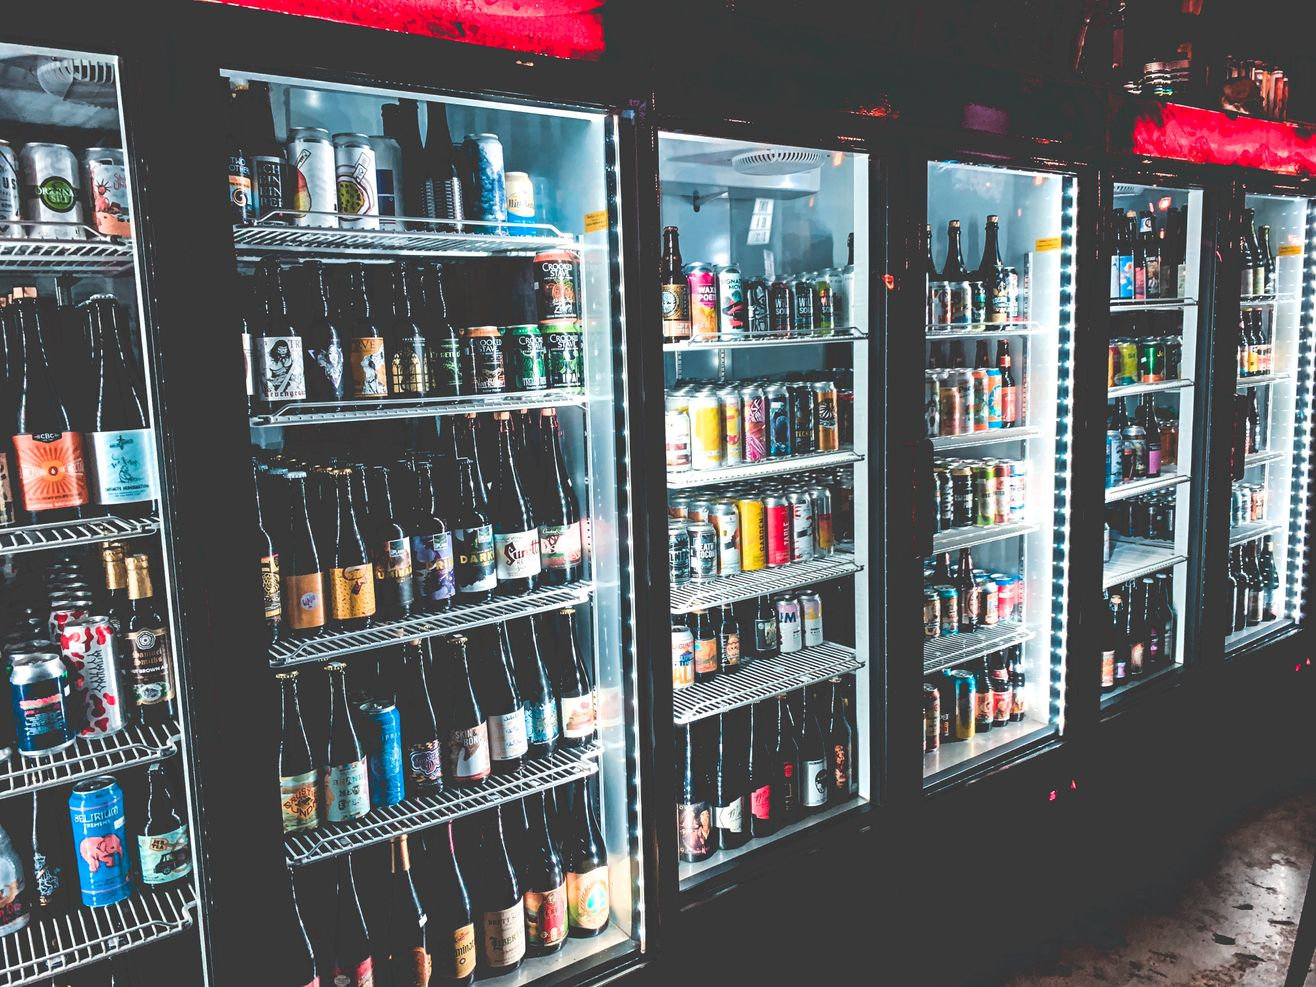 Purchase Craft Beer to go